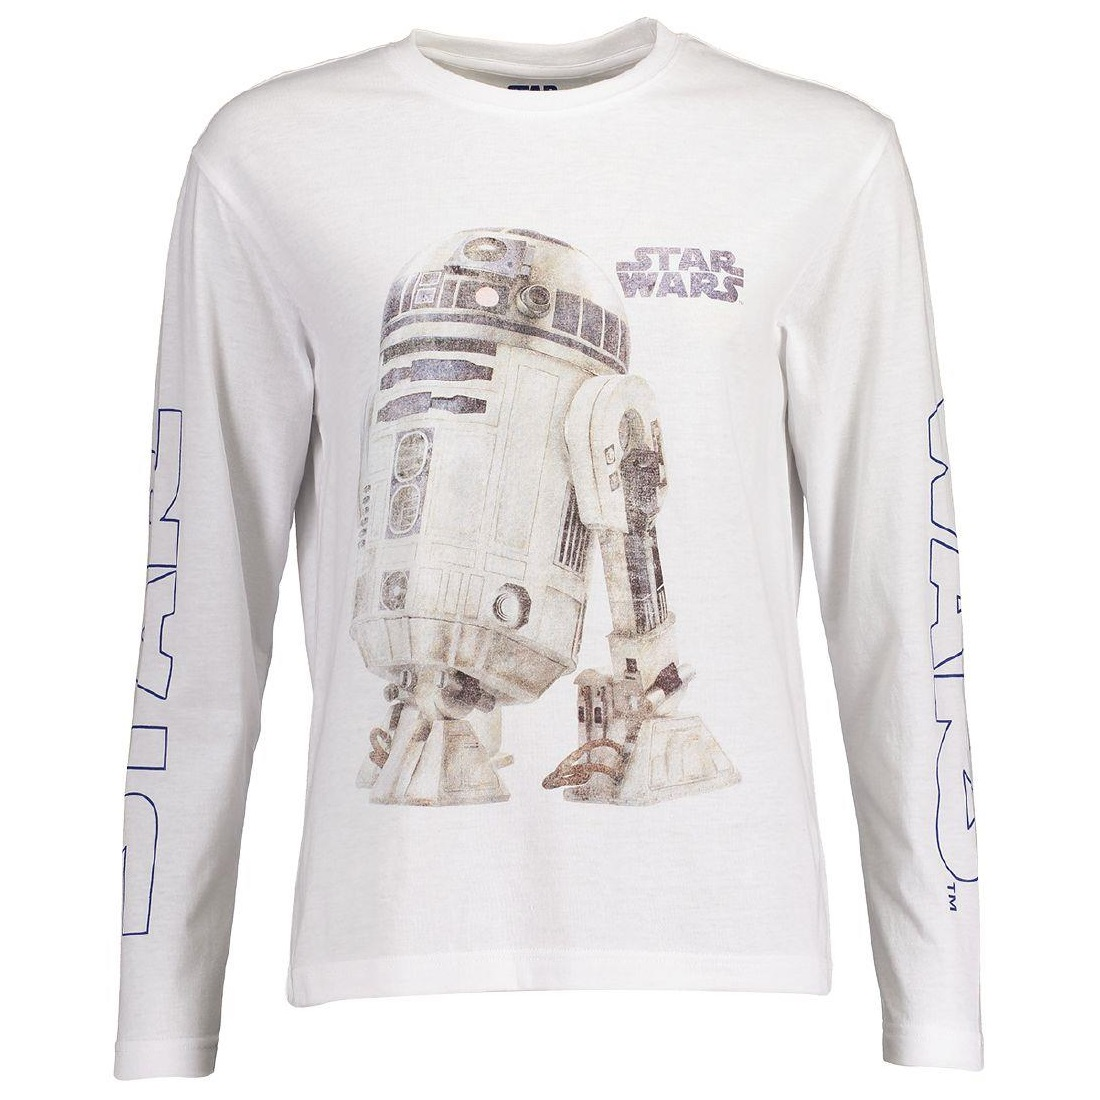 Women's Star Wars R2-D2 Long Sleeve Tee at The Warehouse NZ